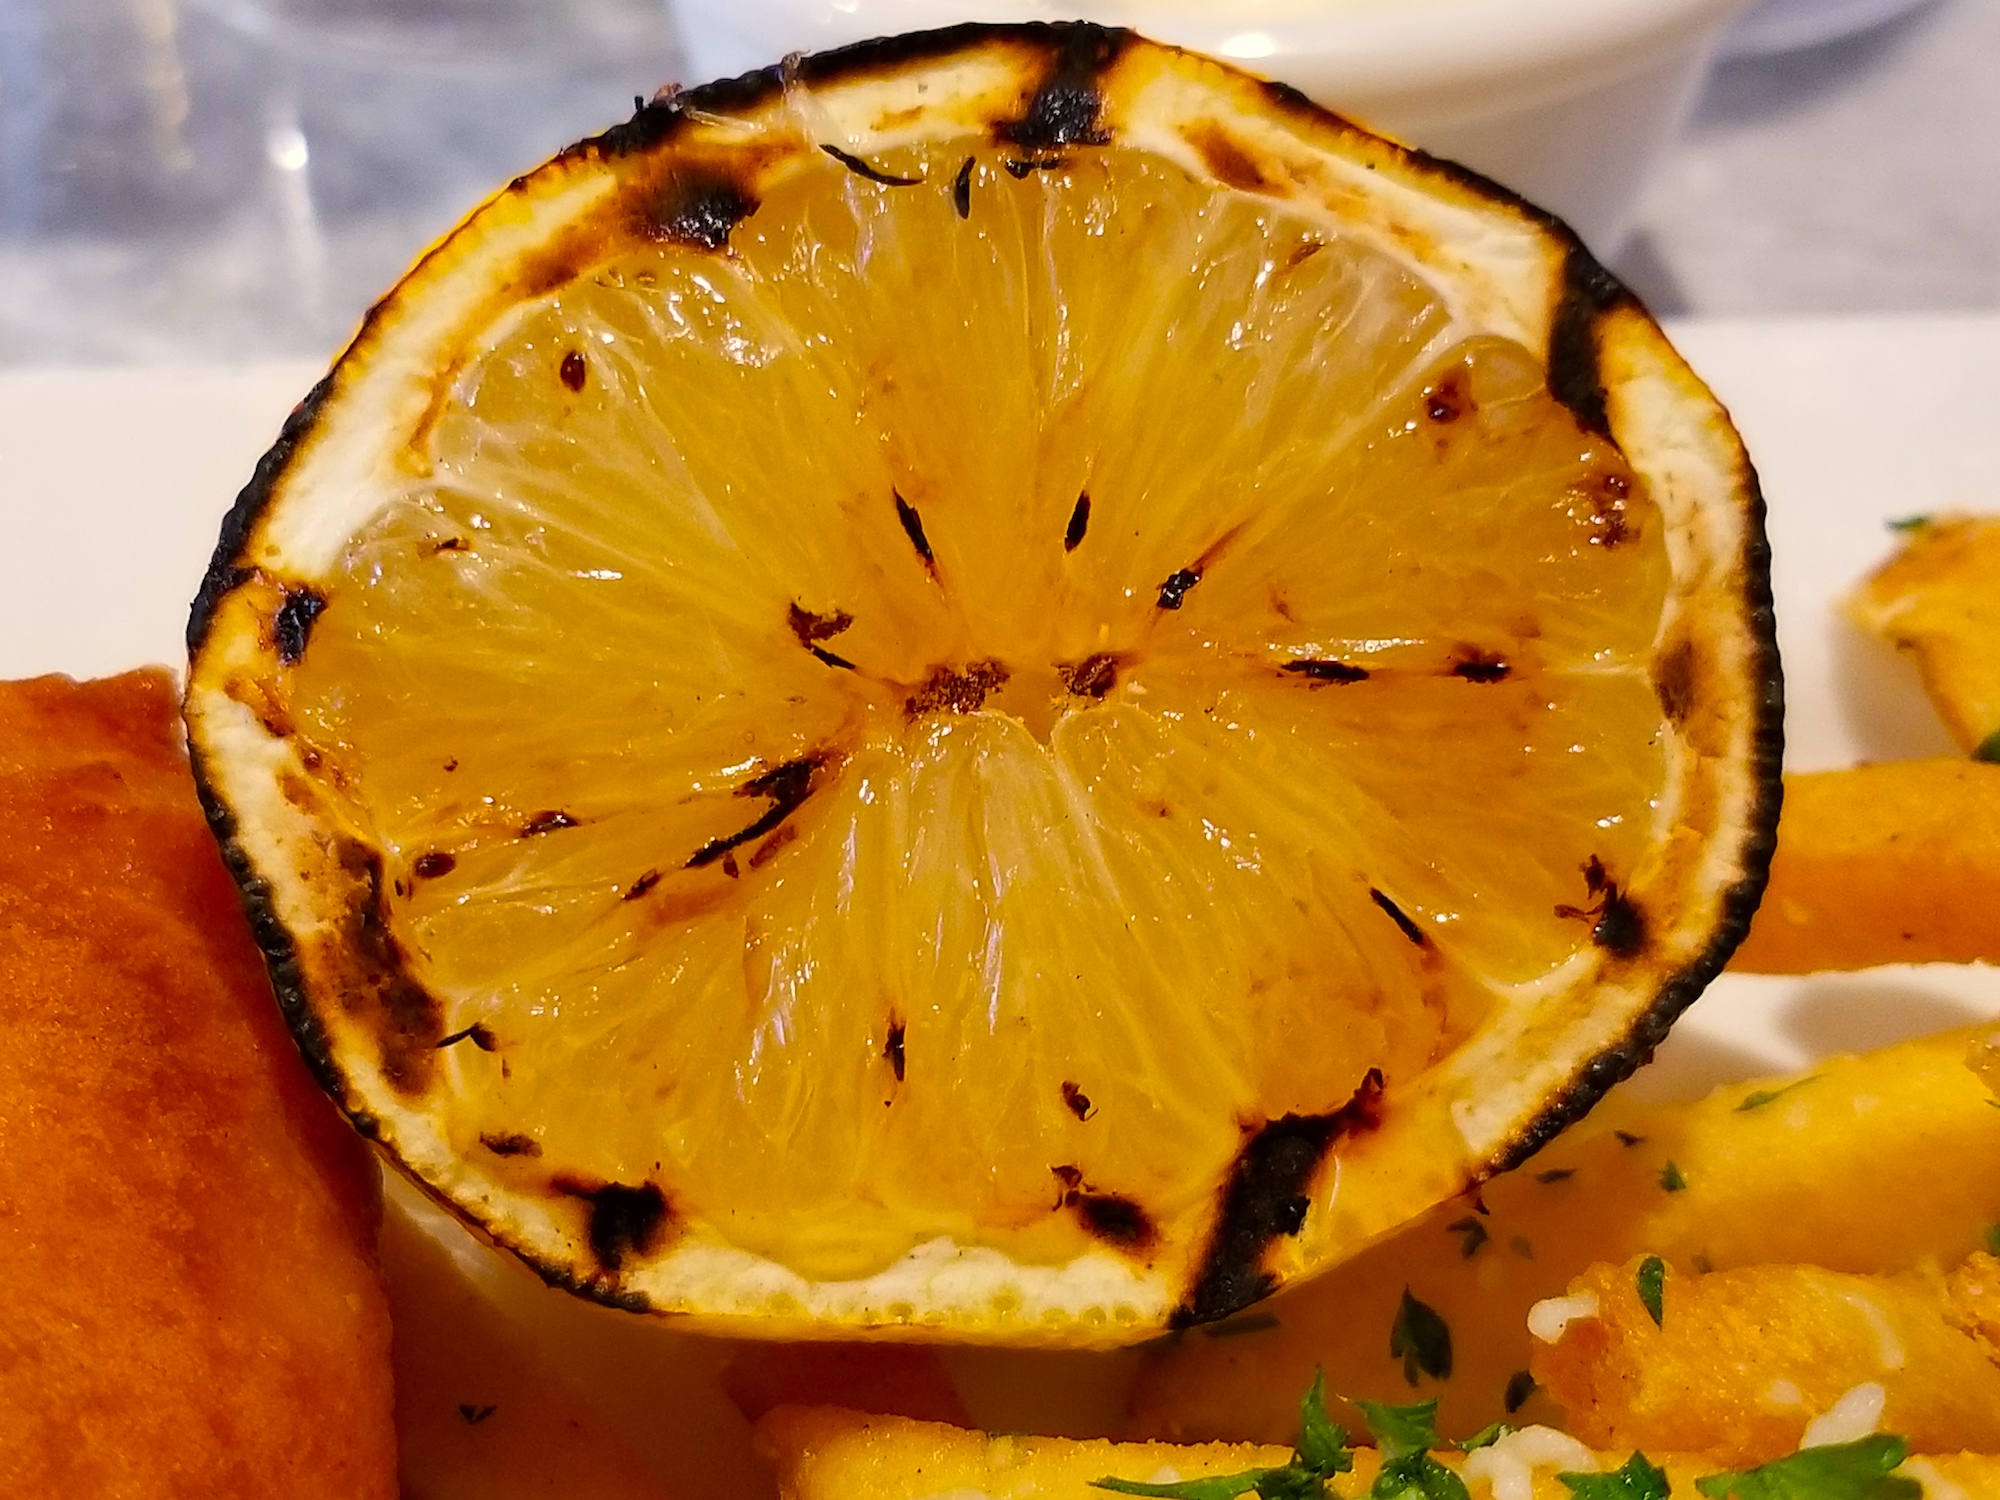 Grilled Lemon Half.jpg